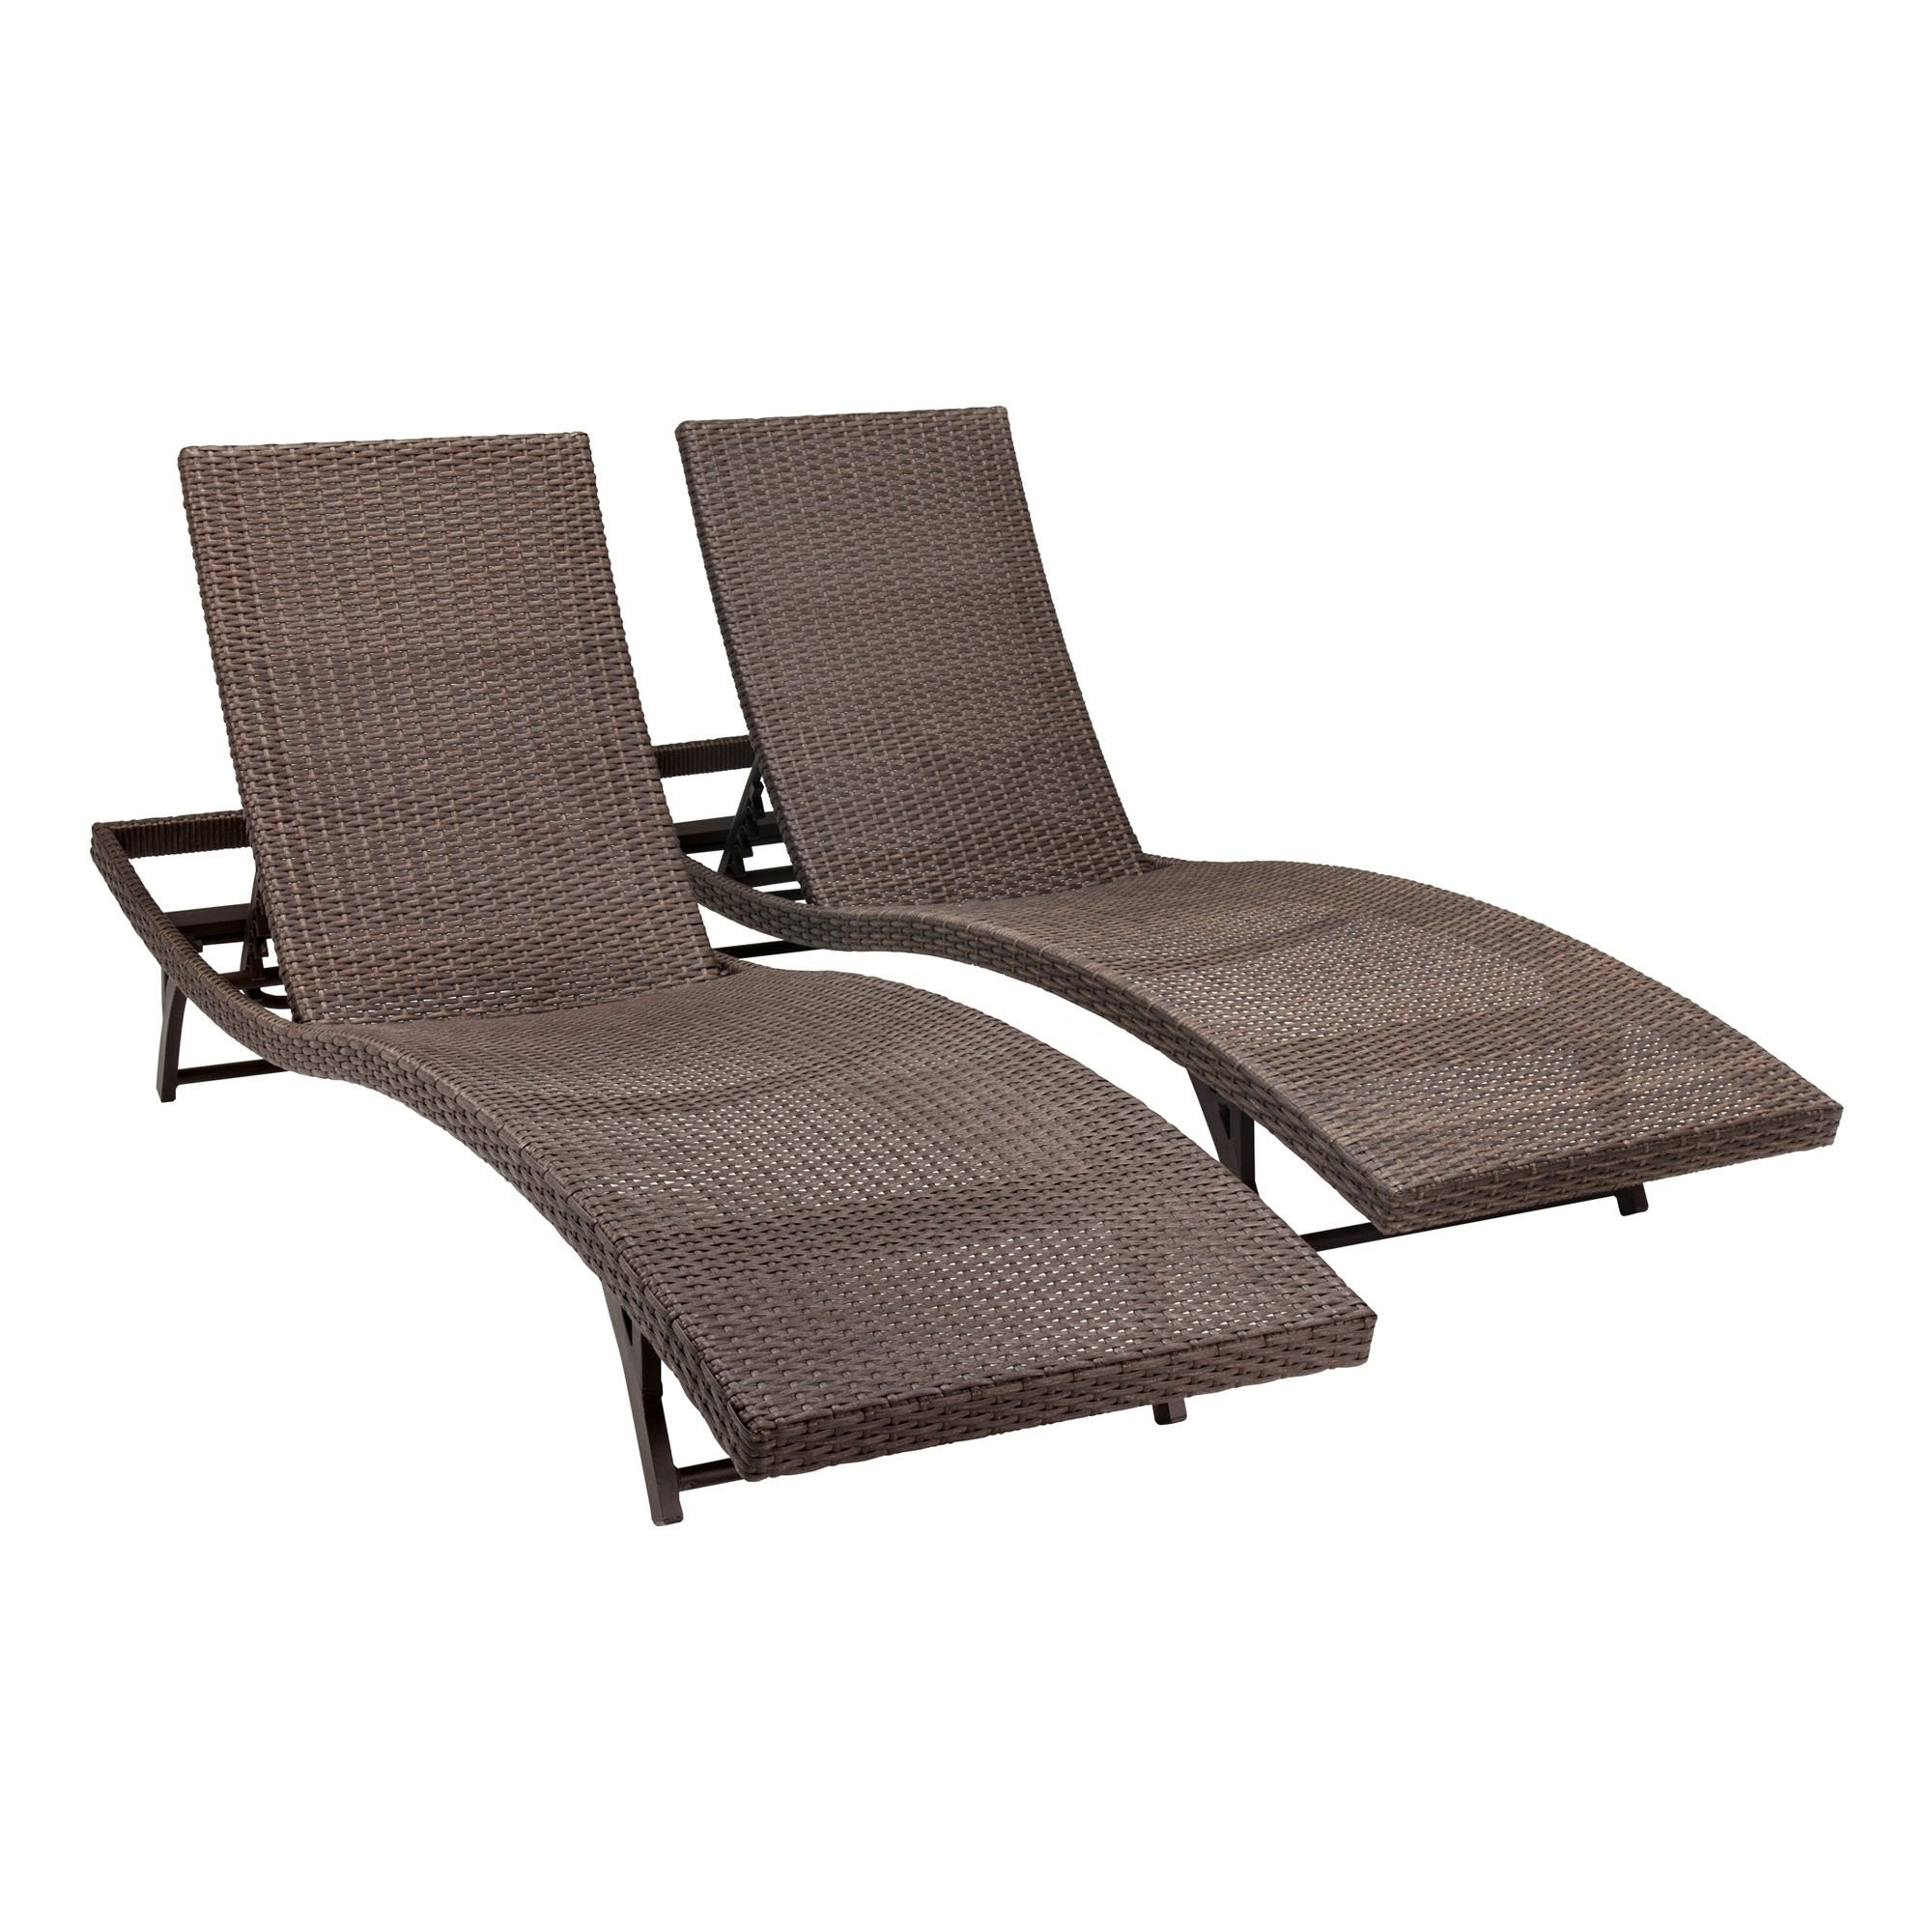 Most Up To Date Pvc Outdoor Chaise Lounge Chairs In Convertible Chair : Lounge Outdoor Outdoor Chaise Lounge Sale (View 8 of 15)